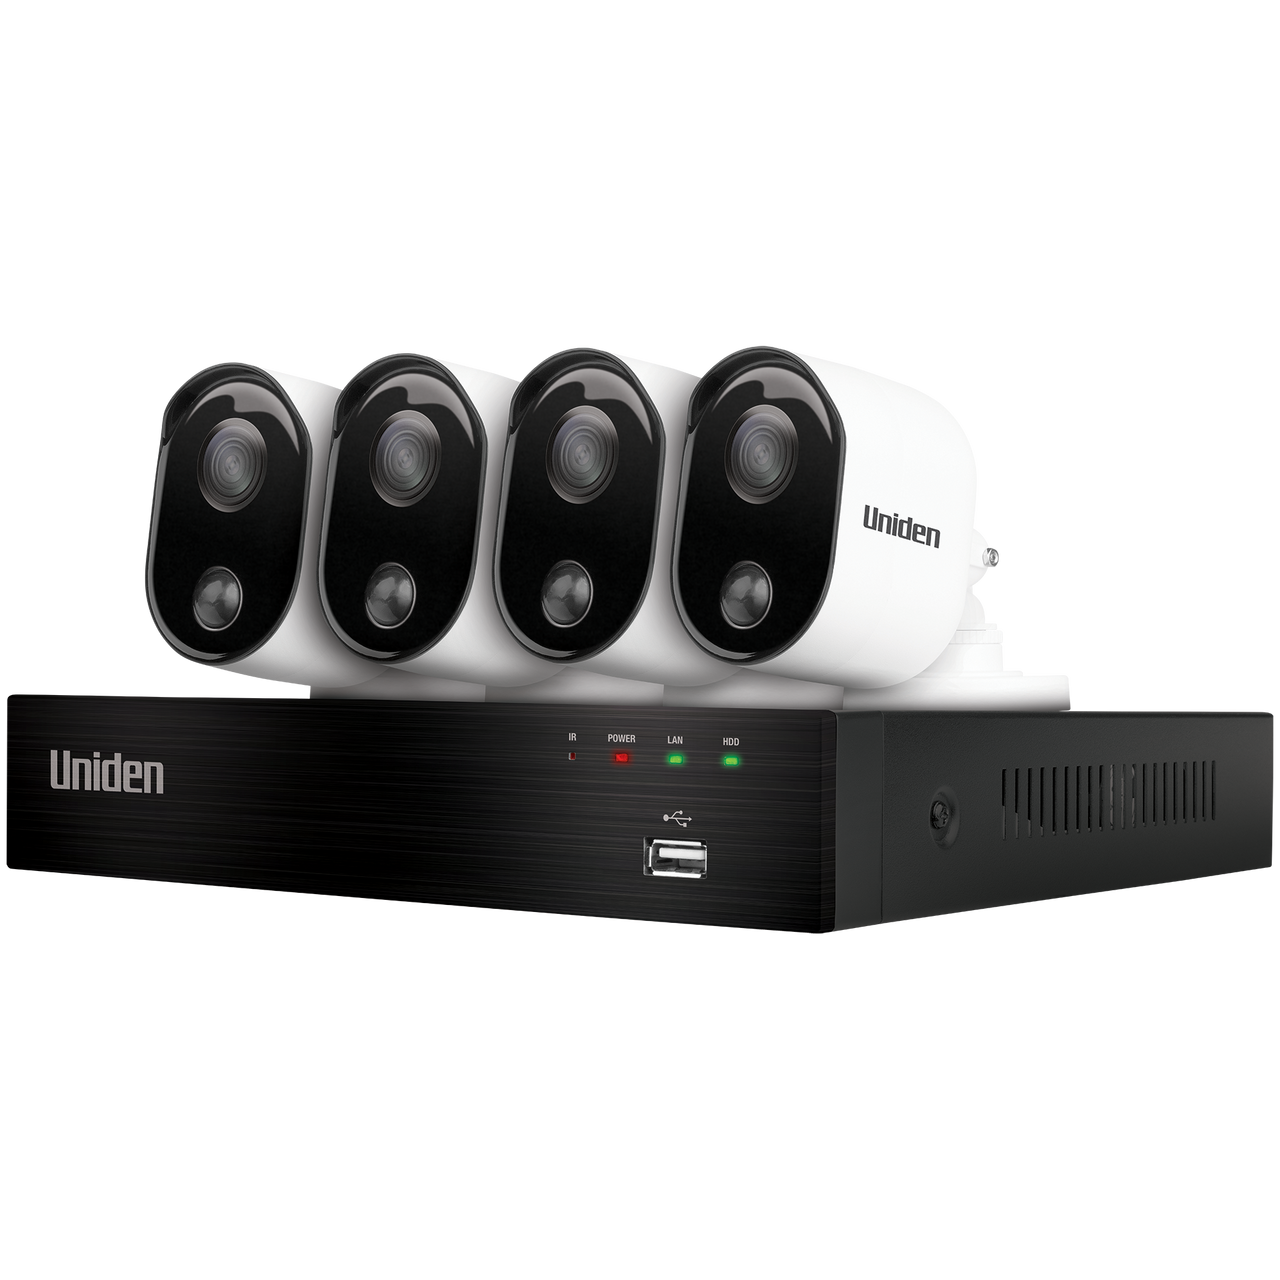 Uniden GDVR20440 Guardian 1TB Full HD 4 Camera Thermal Weatherproof CCTV System